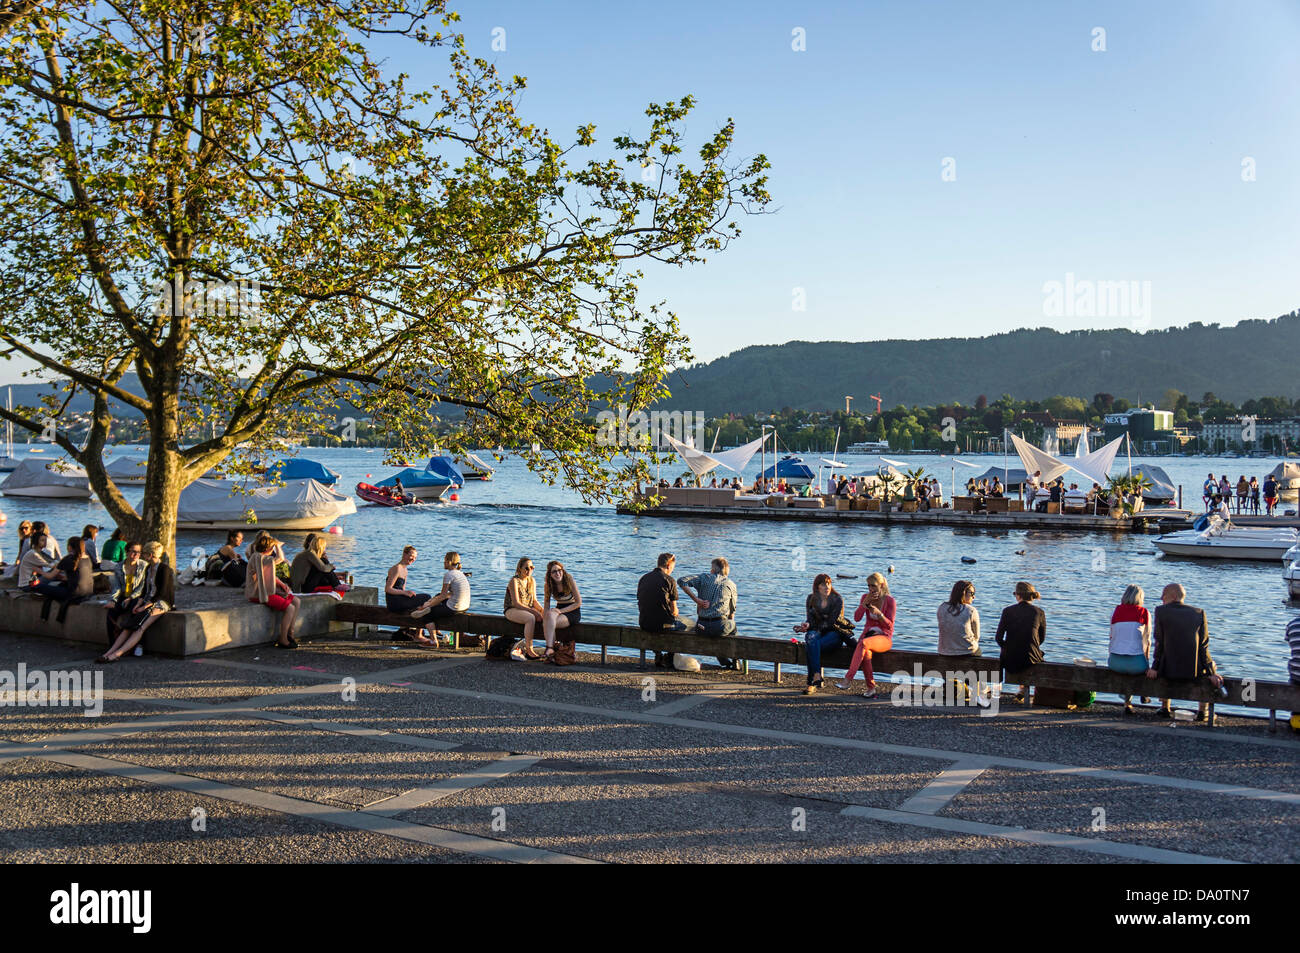 Zurich lake promenade, Zurich, Switzerland - Stock Image